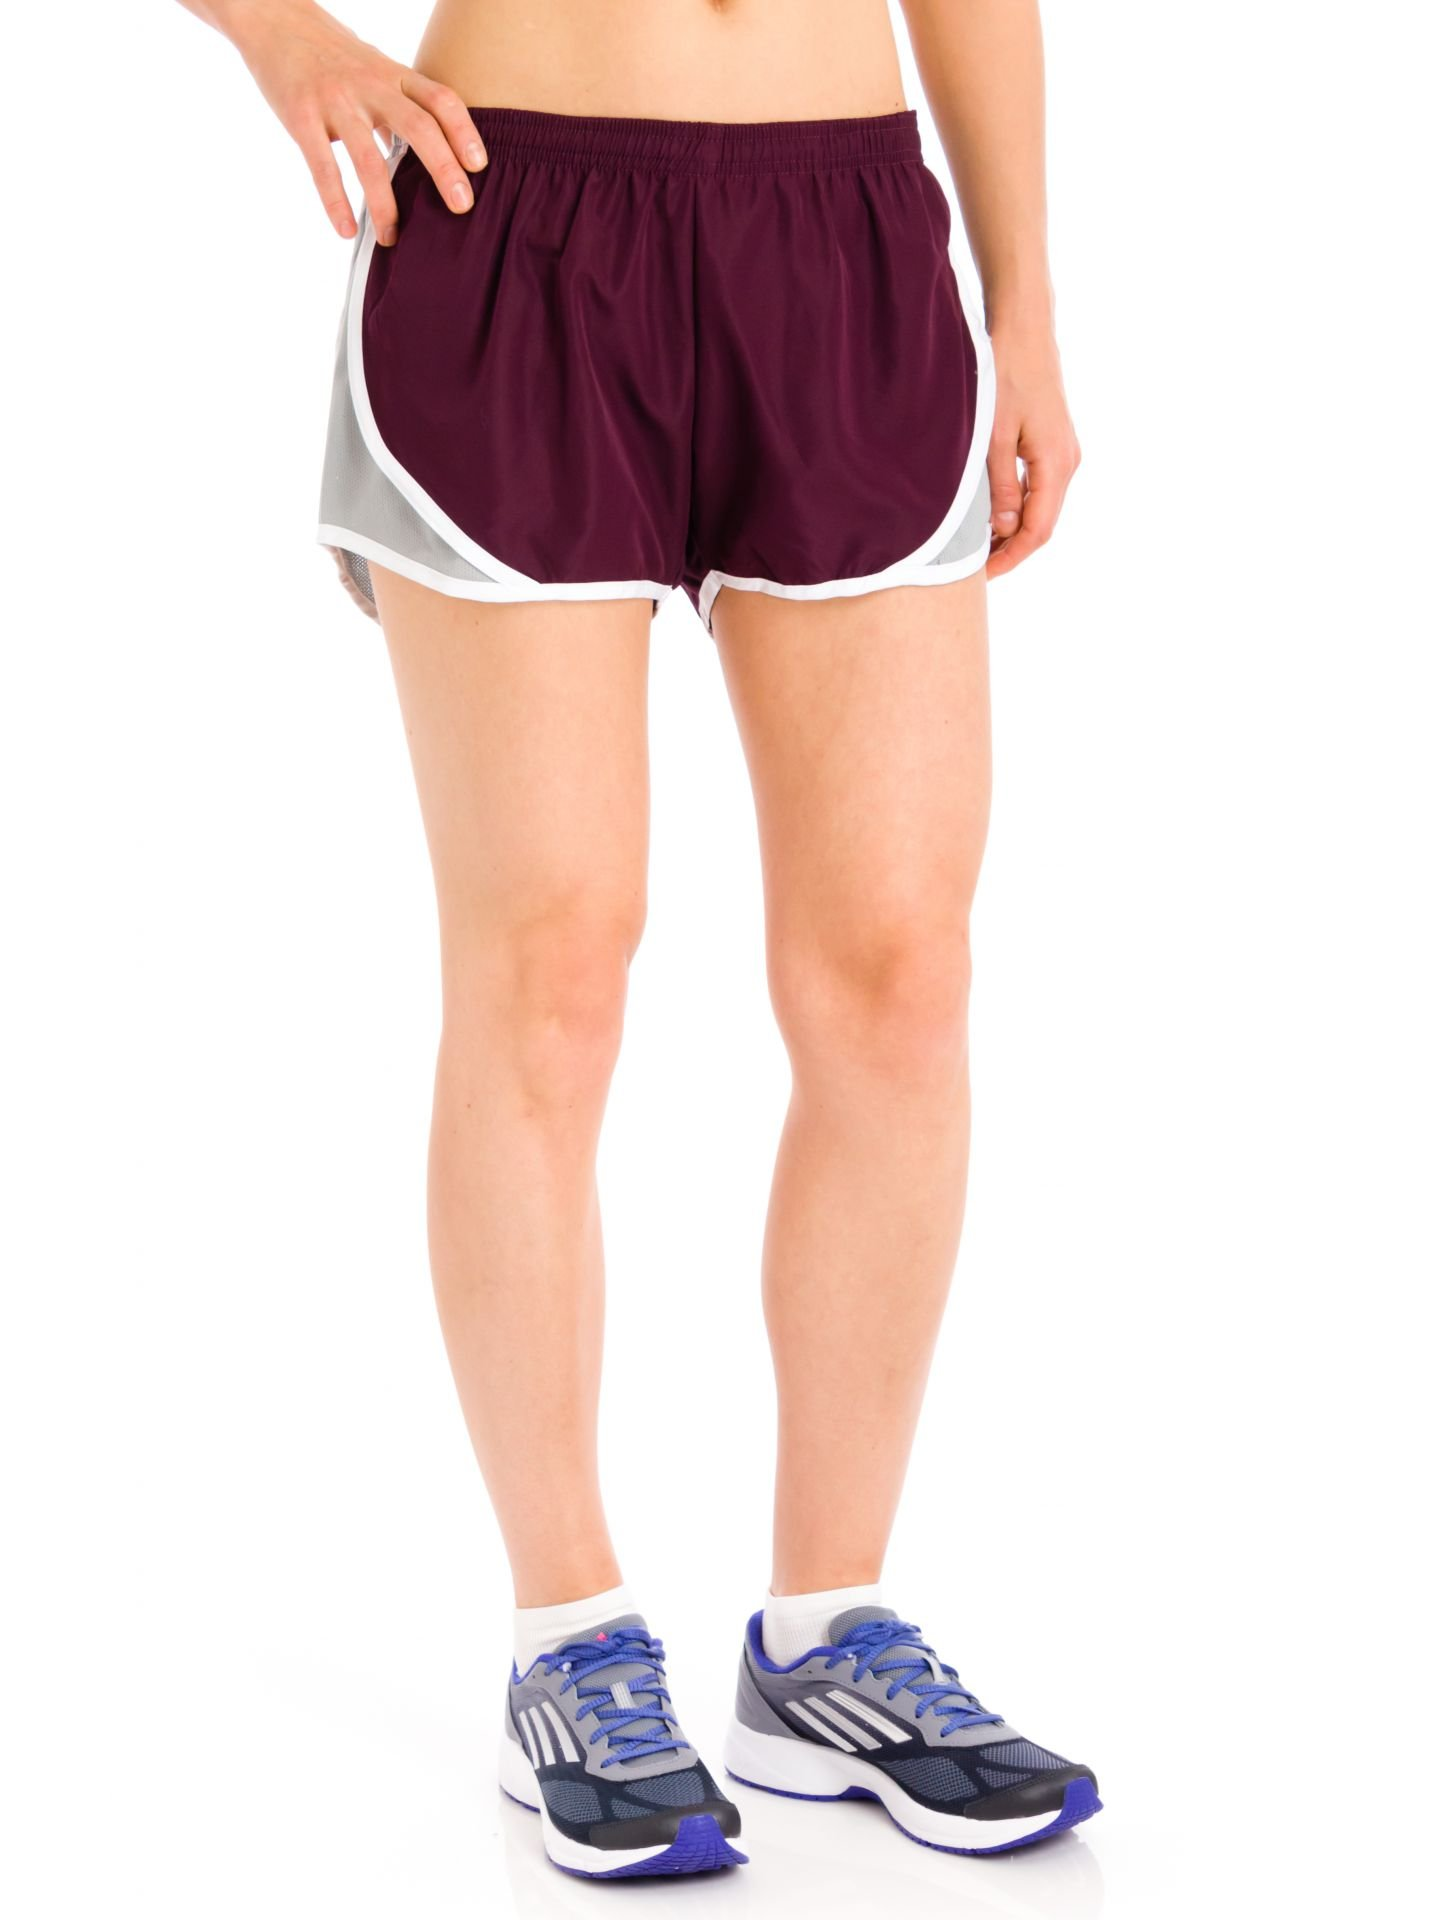 Soffe Junior Shorty Shorts, Maroon, Large by Soffe